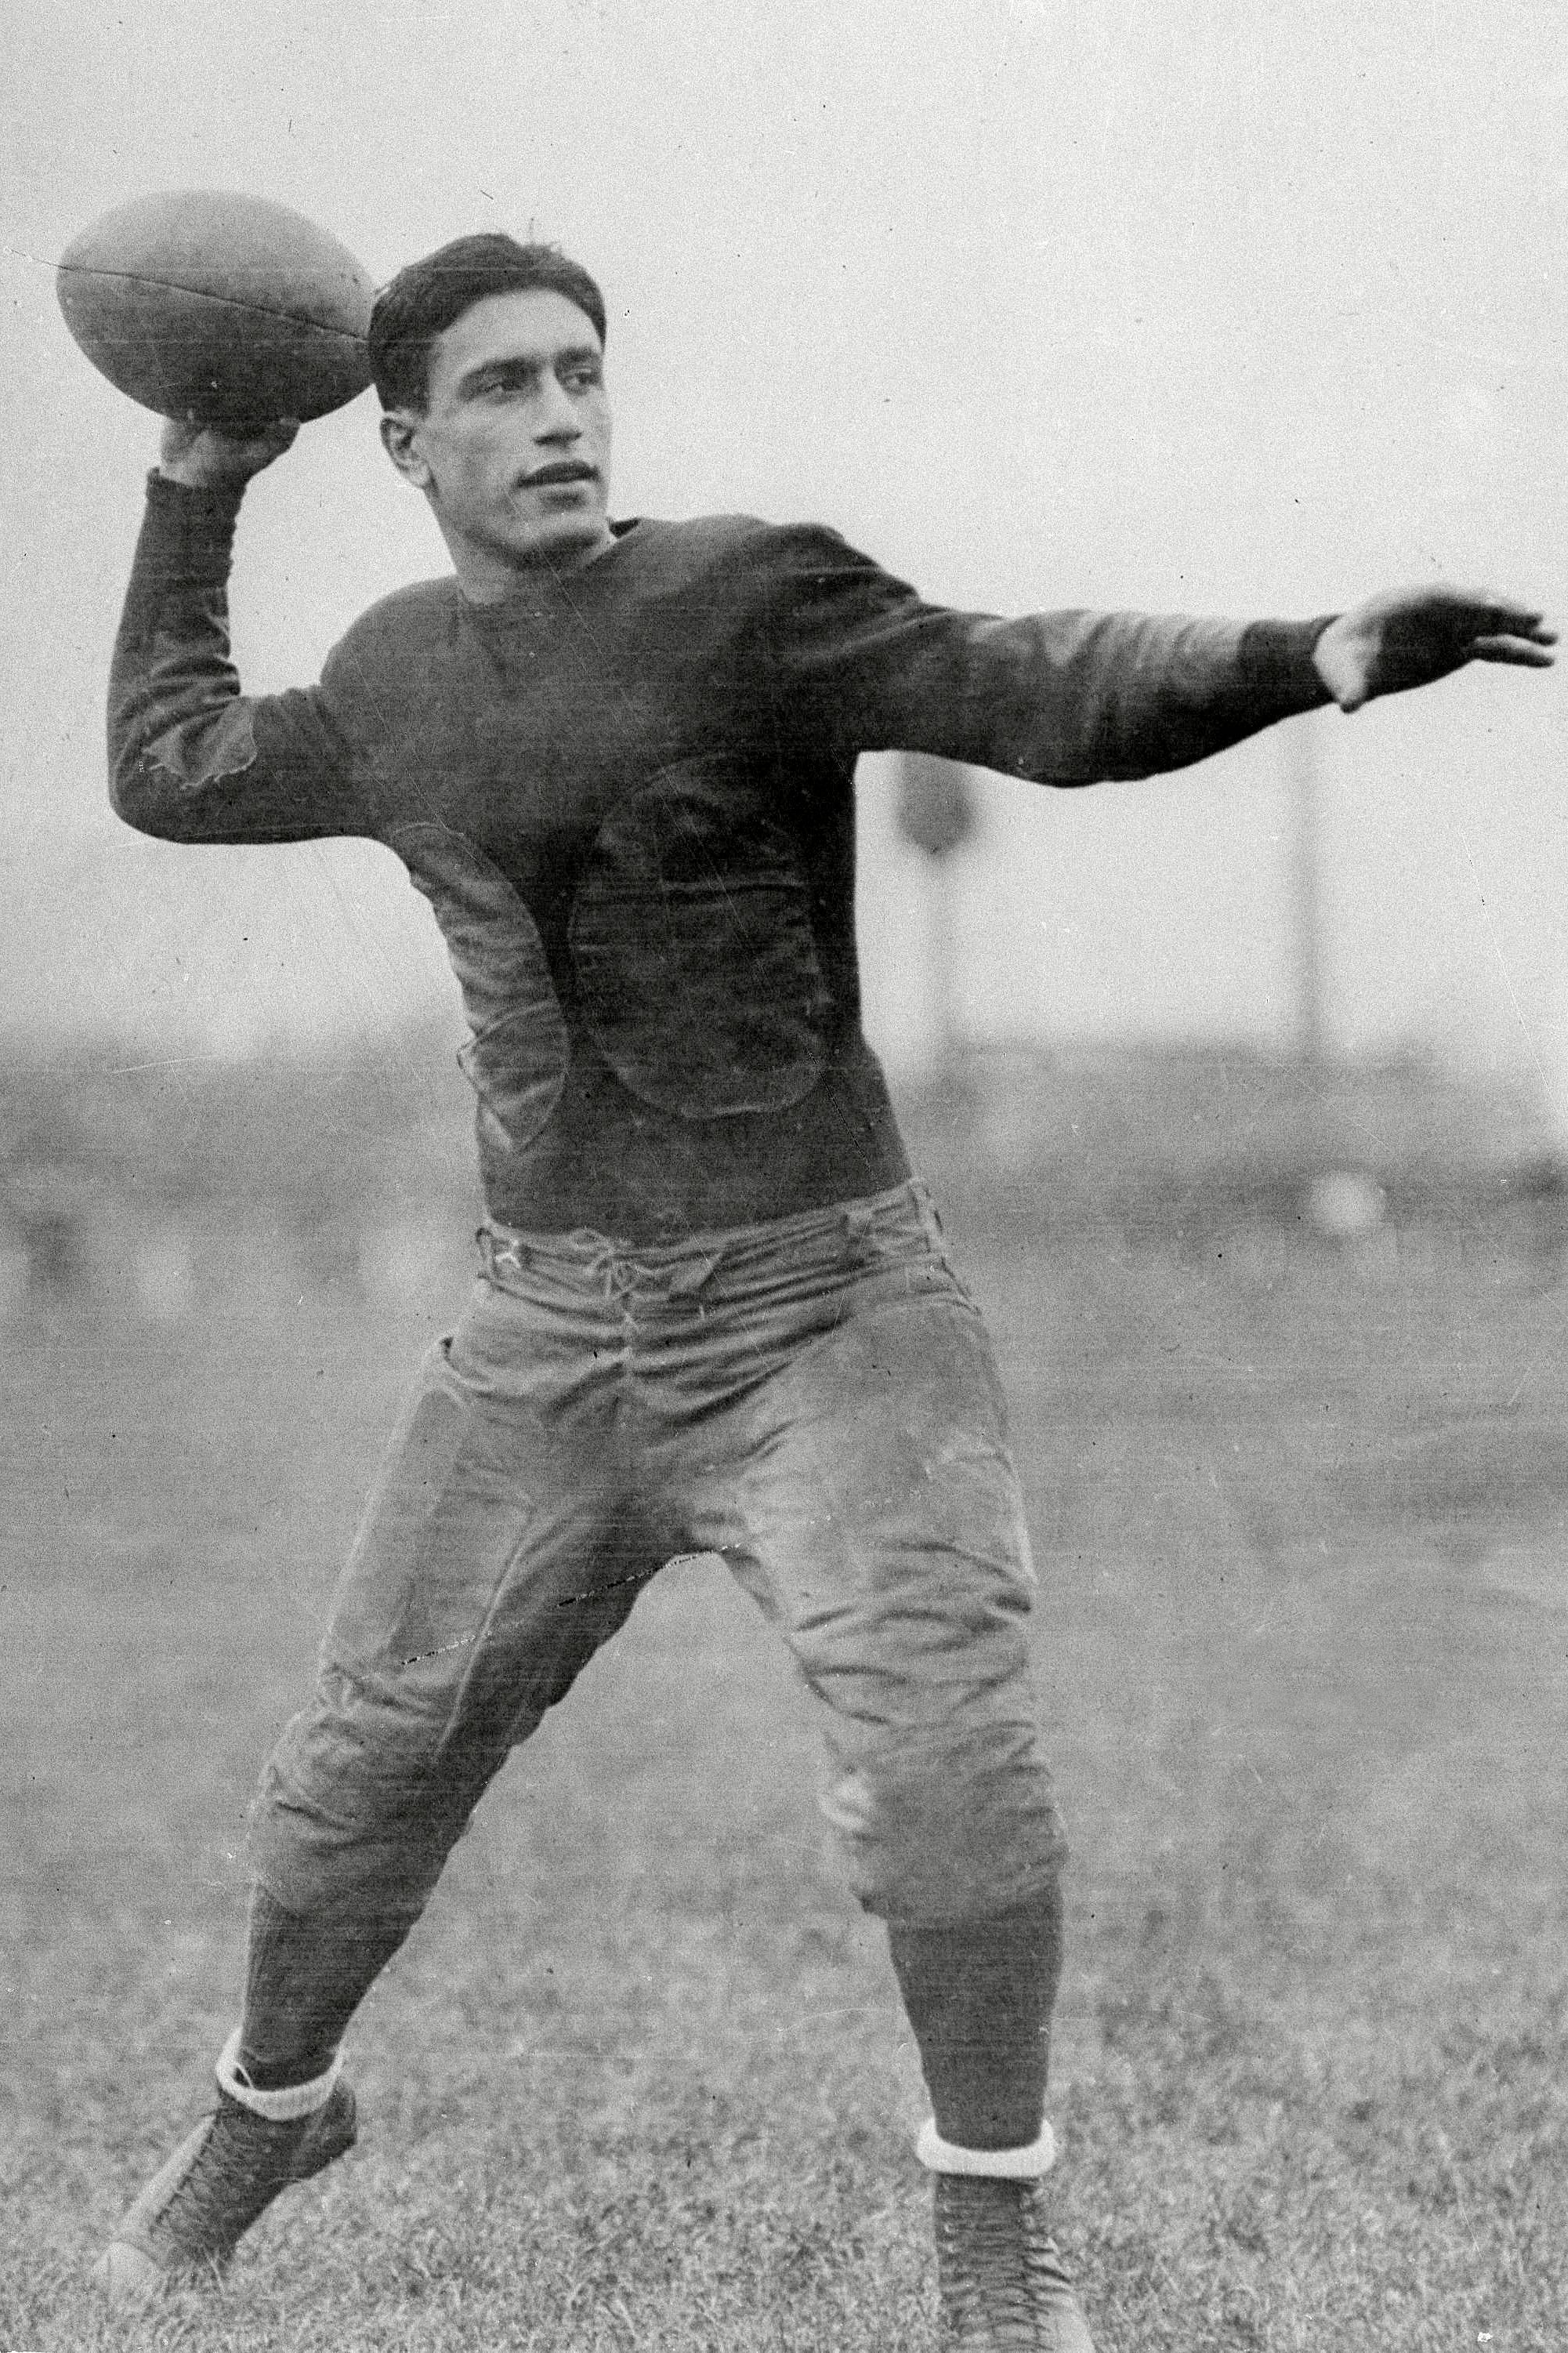 Mandatory Credit: Photo by Uncredited/AP/Shutterstock (10418272a) Showing Cleveland Bulldogs quarterback Benny Friedman. The first season, 1920, the American Professional Football Association had 14 teams, including the Bulldogs NFL at 100 The 1920s, CLEVELAND, USA - 18 Sep 1926